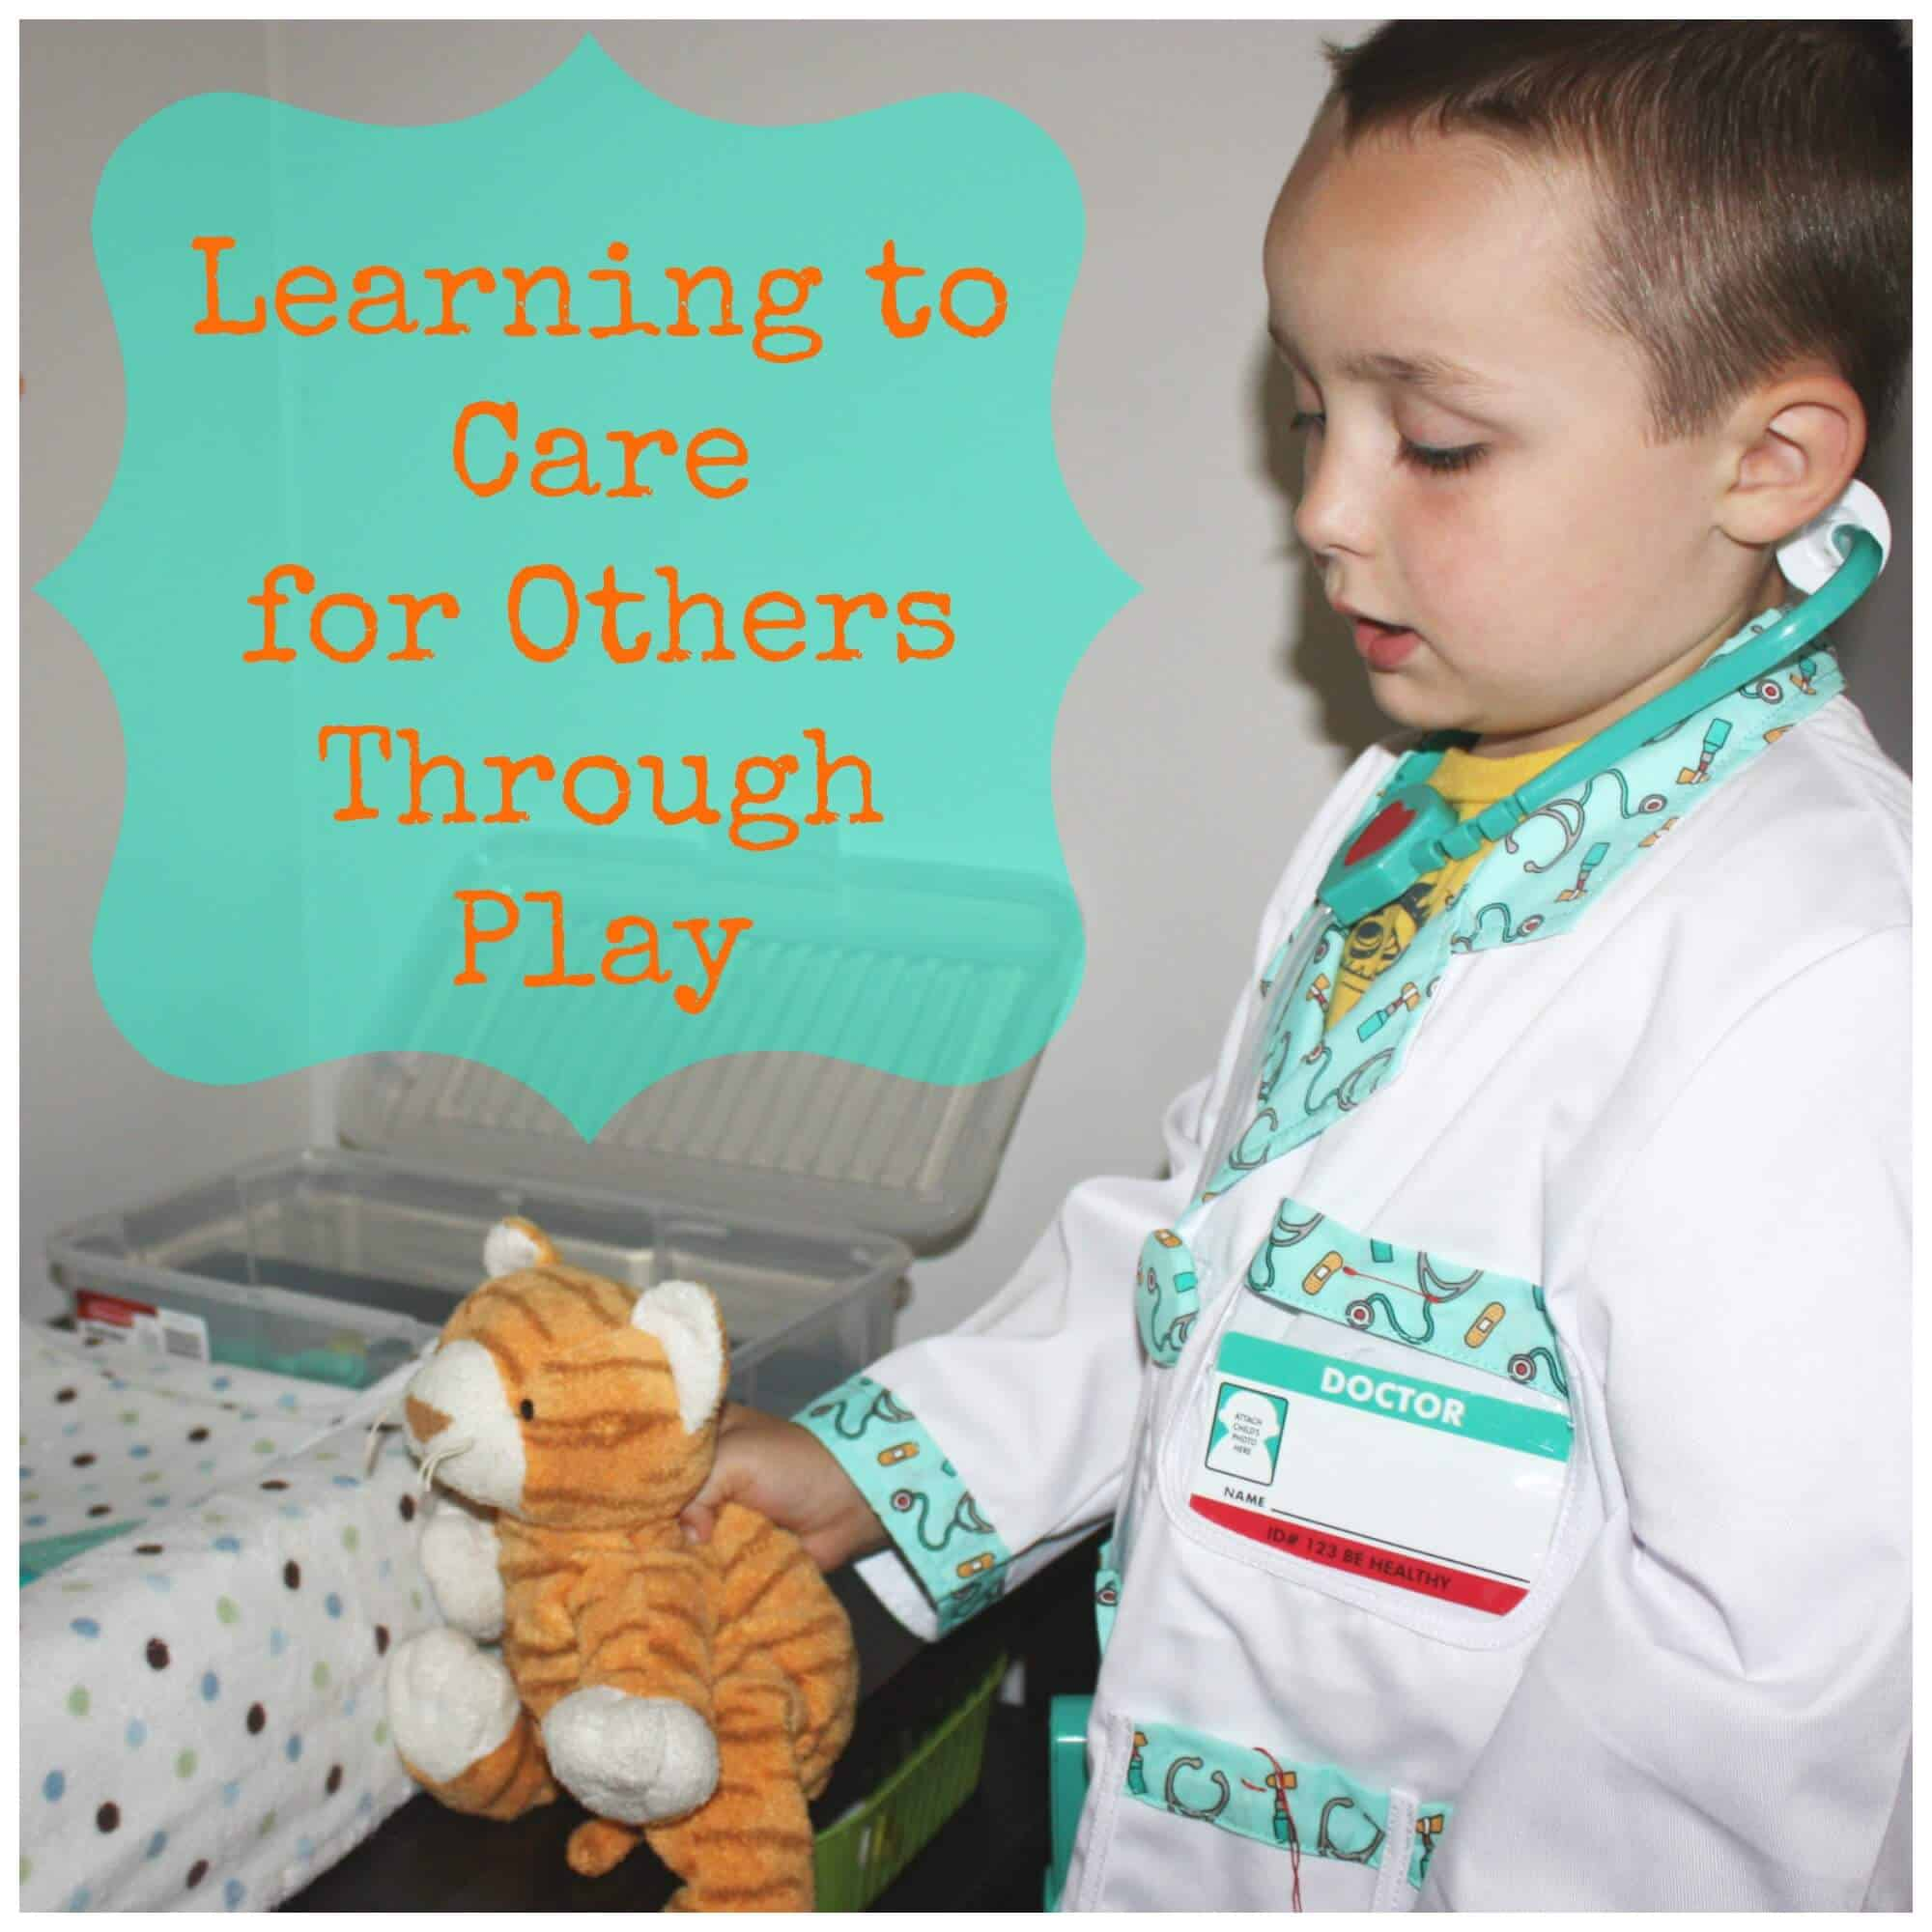 Pretend Play Veterinary Center: Animal Care